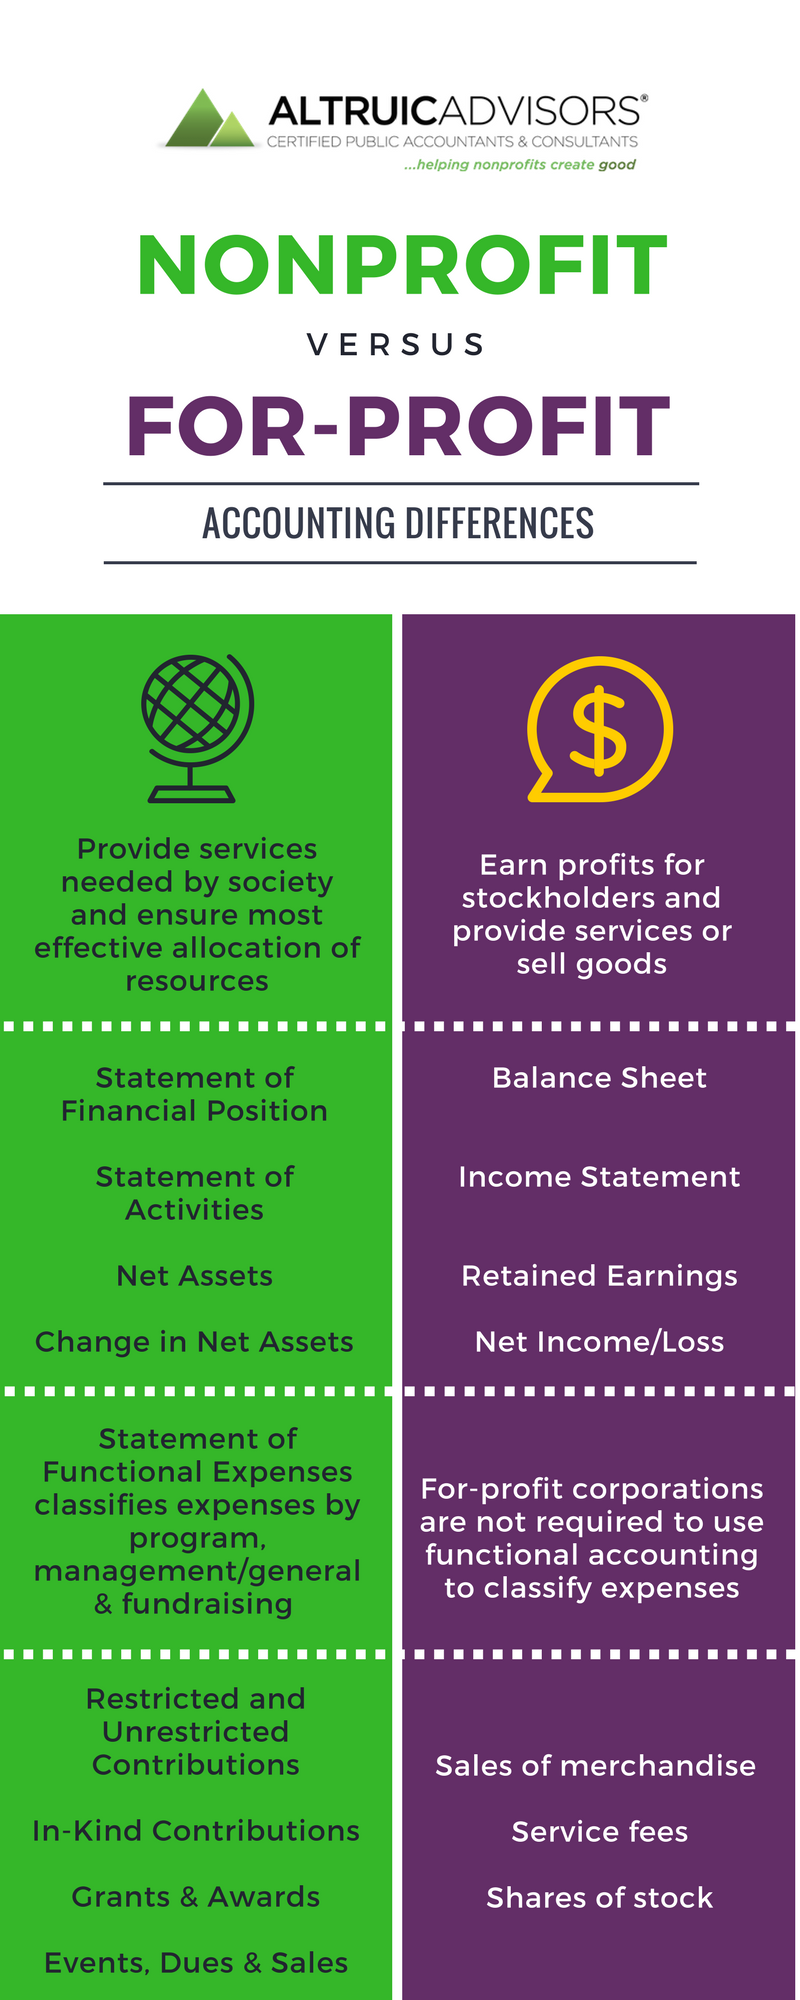 nonprofit-accounting-infographic.png